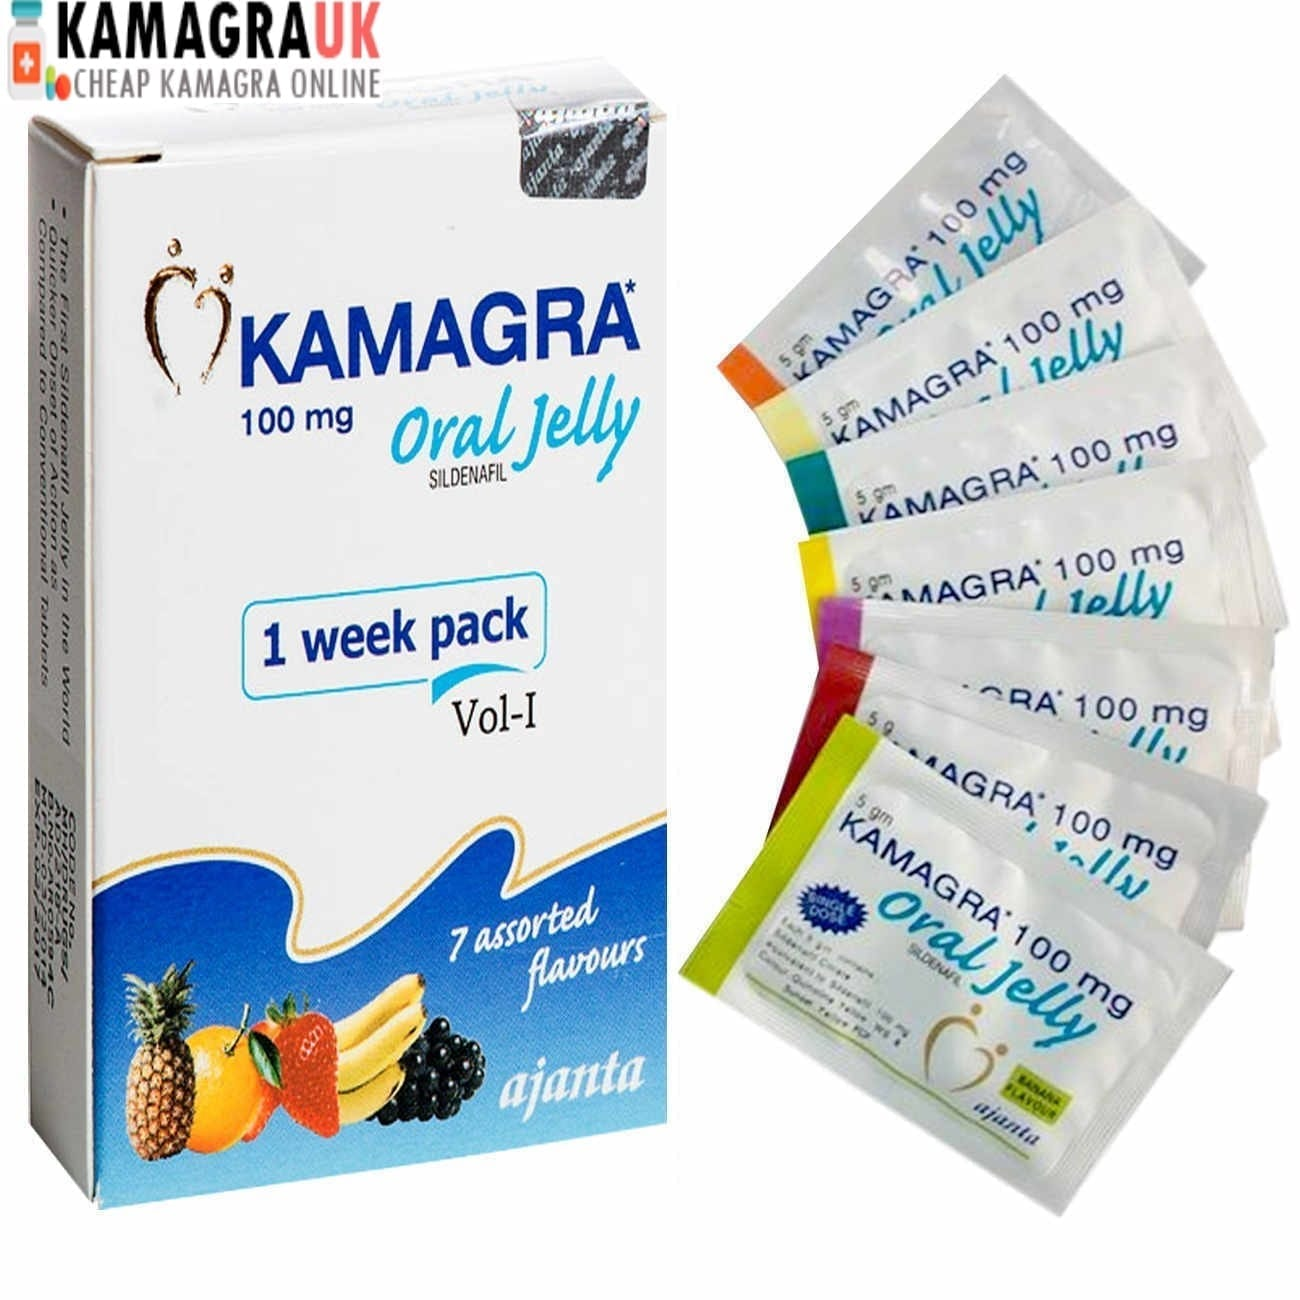 Kamagra Gel Works Faster On ED Than Conventional Tablets